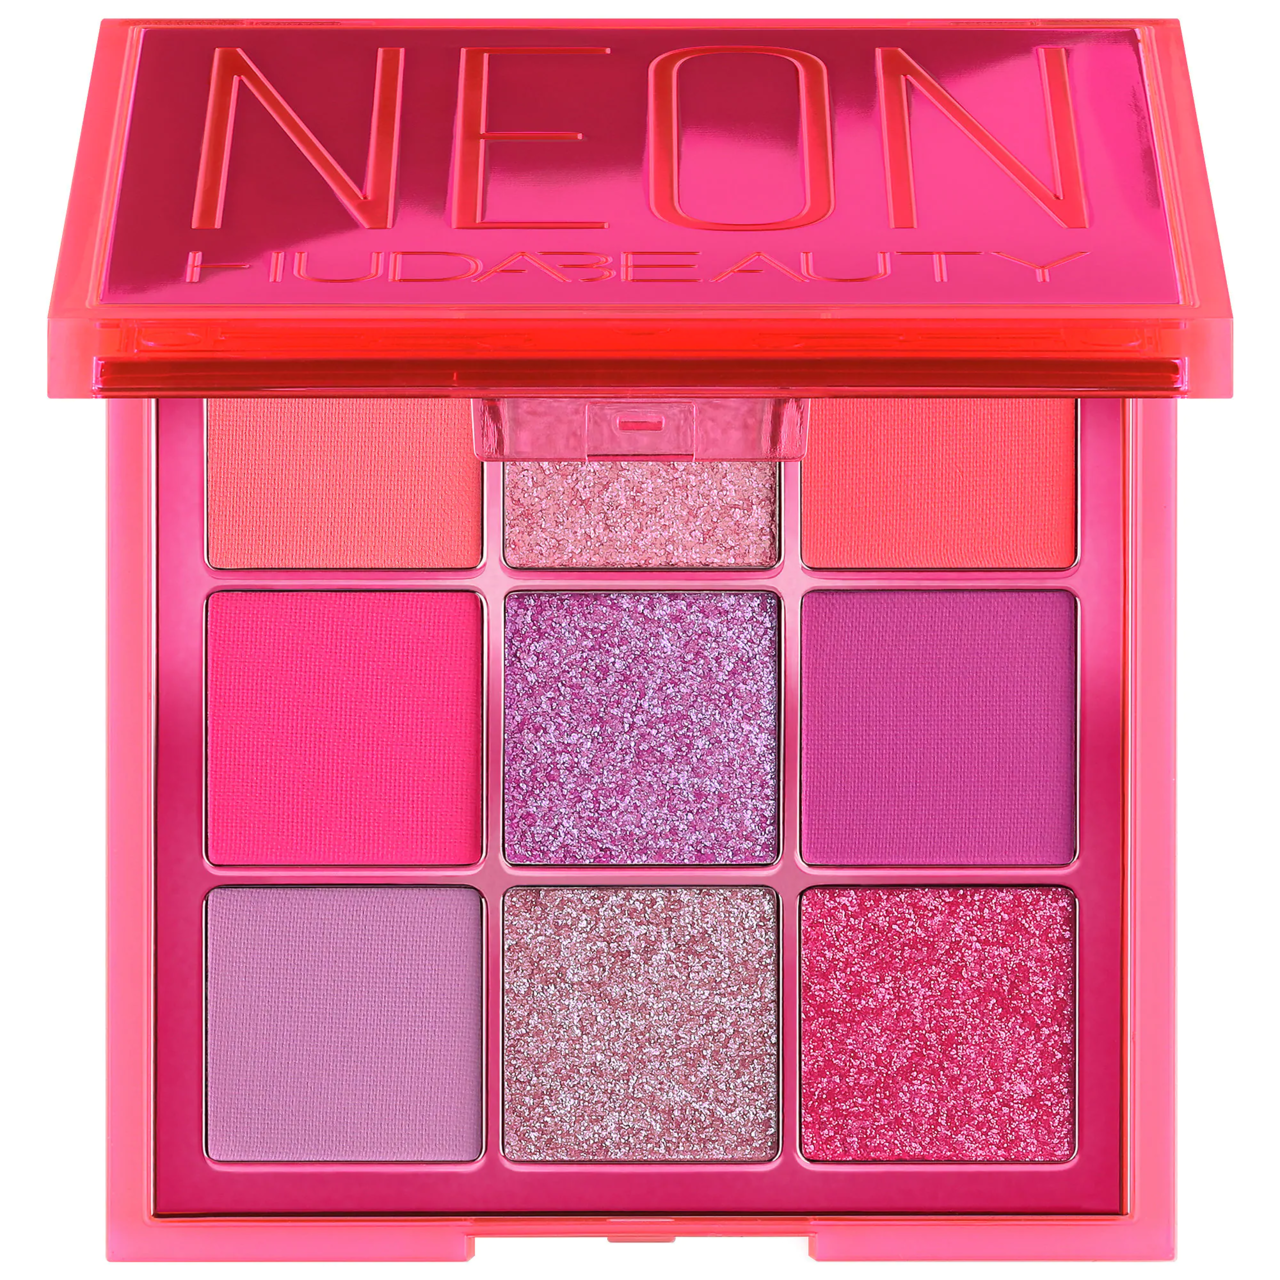 Huda Beauty Neon Obsessions Pallet in shades of pink and purple